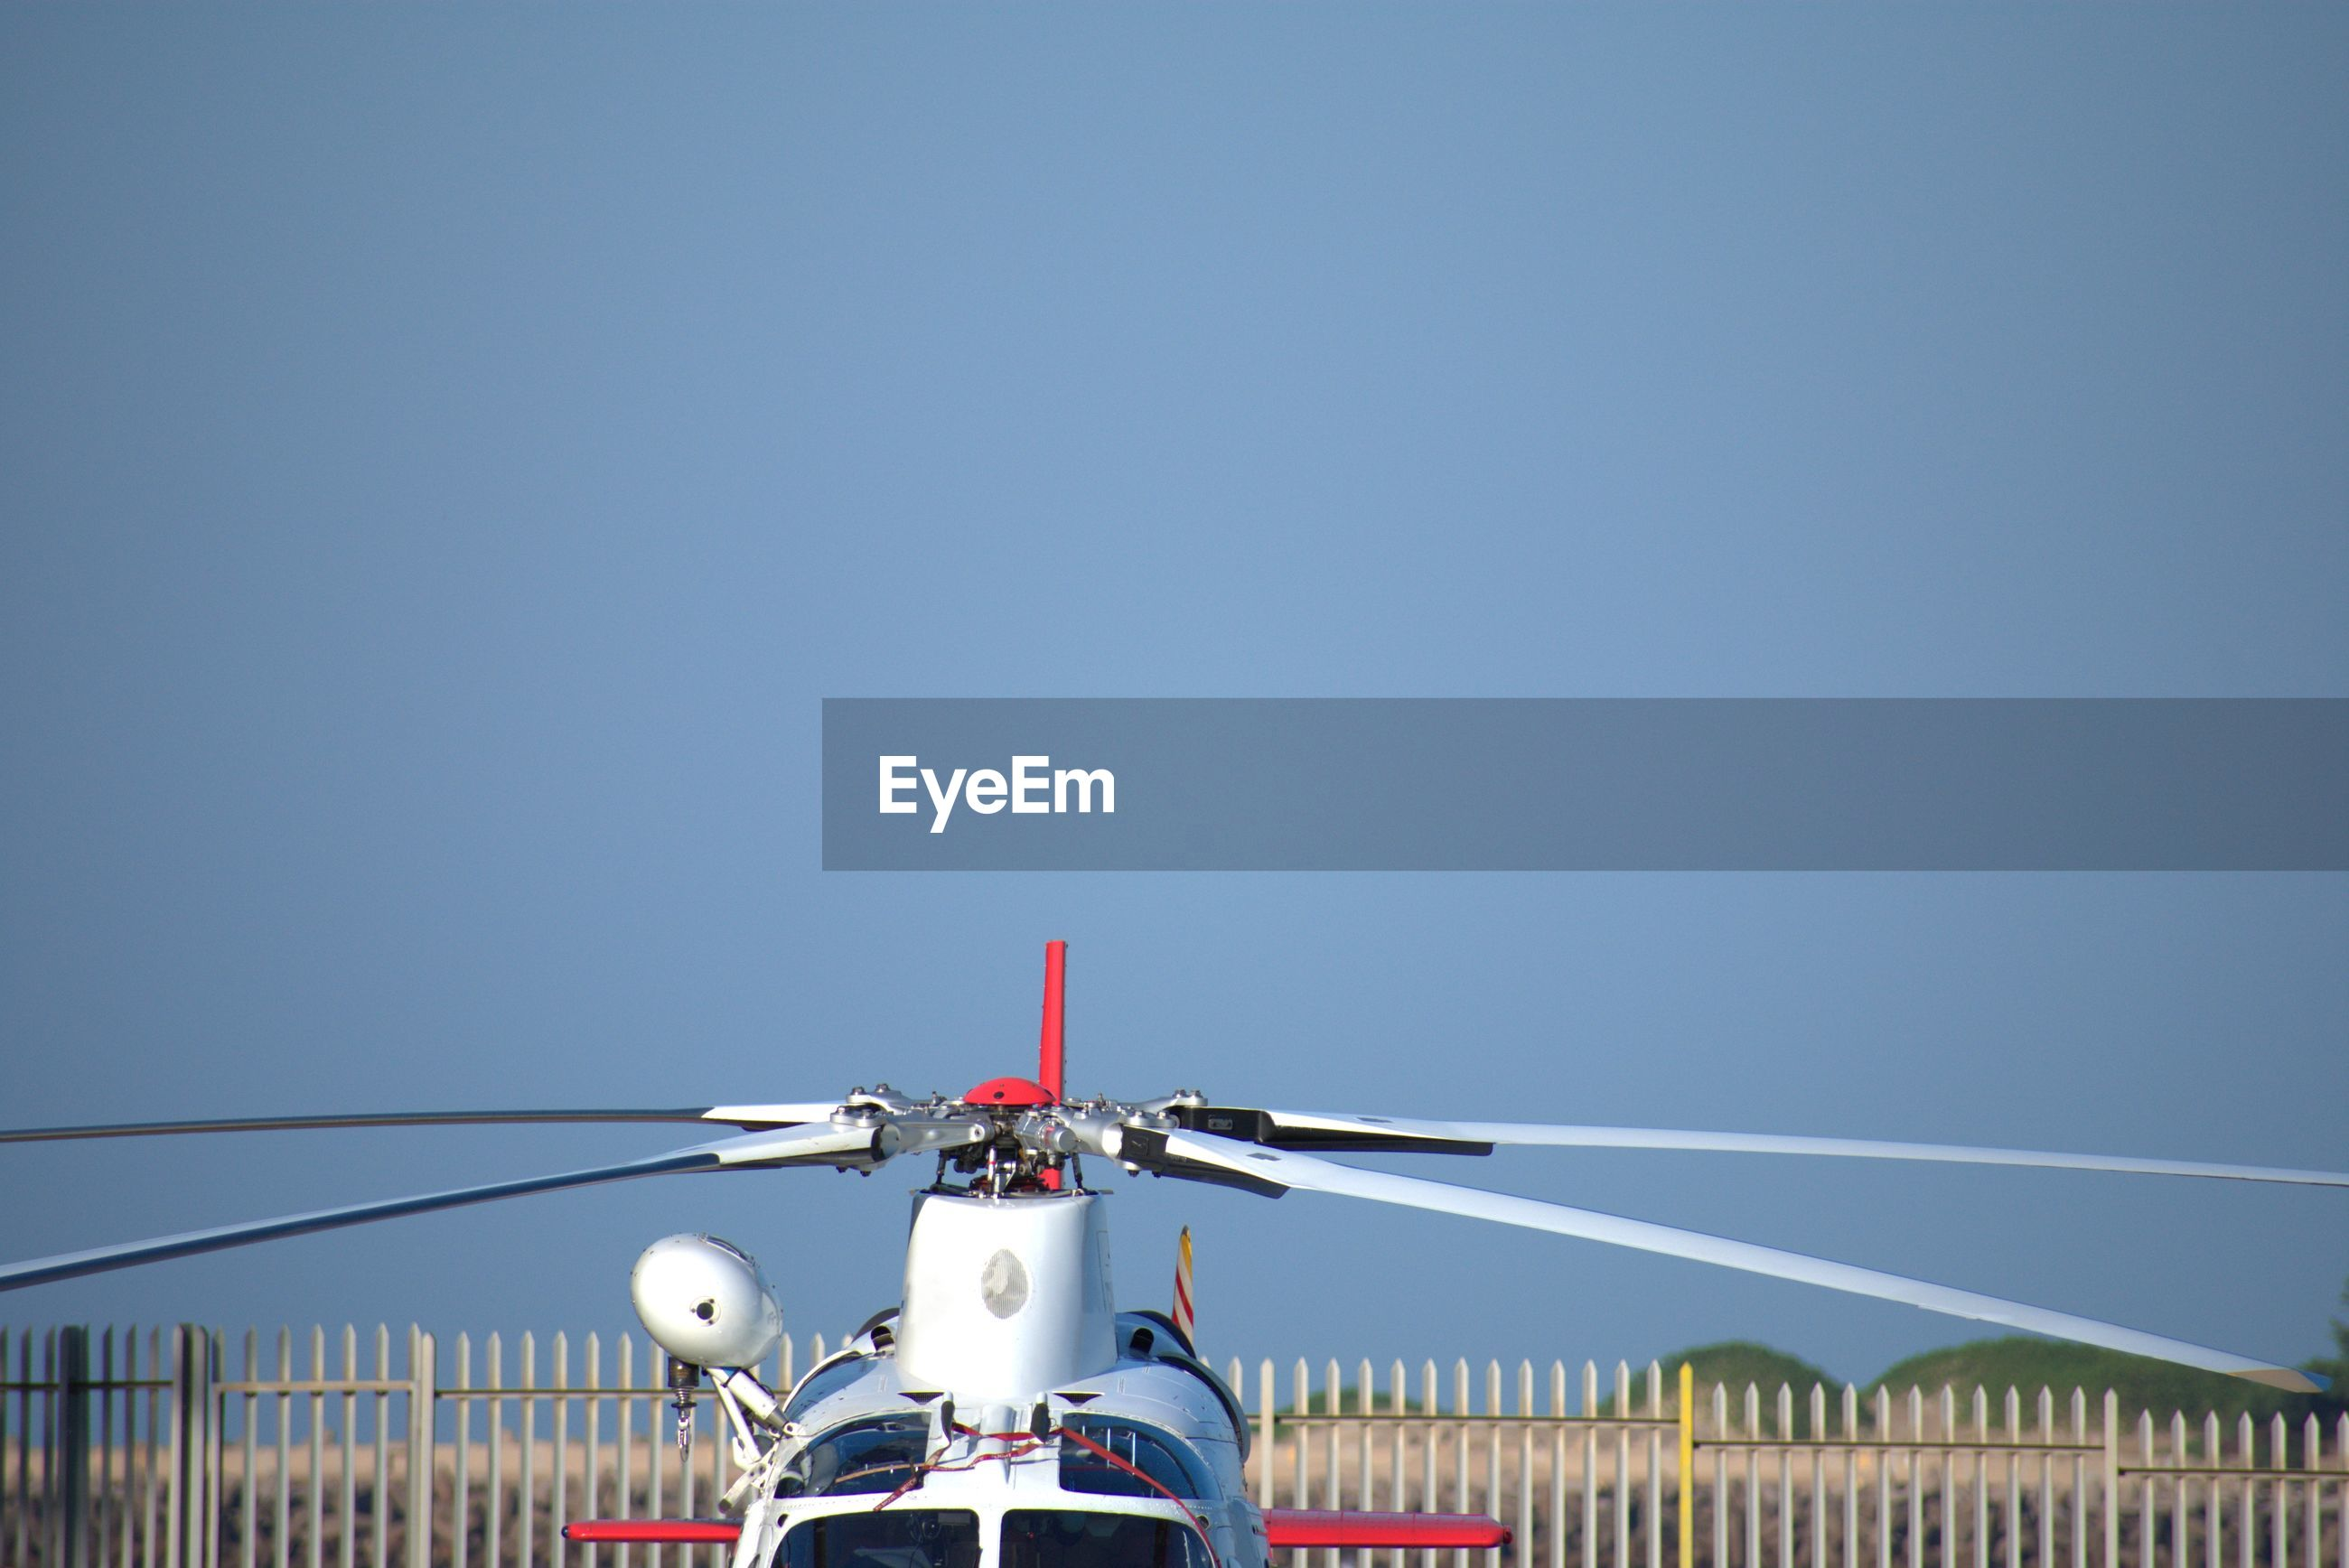 Helicopter against clear blue sky